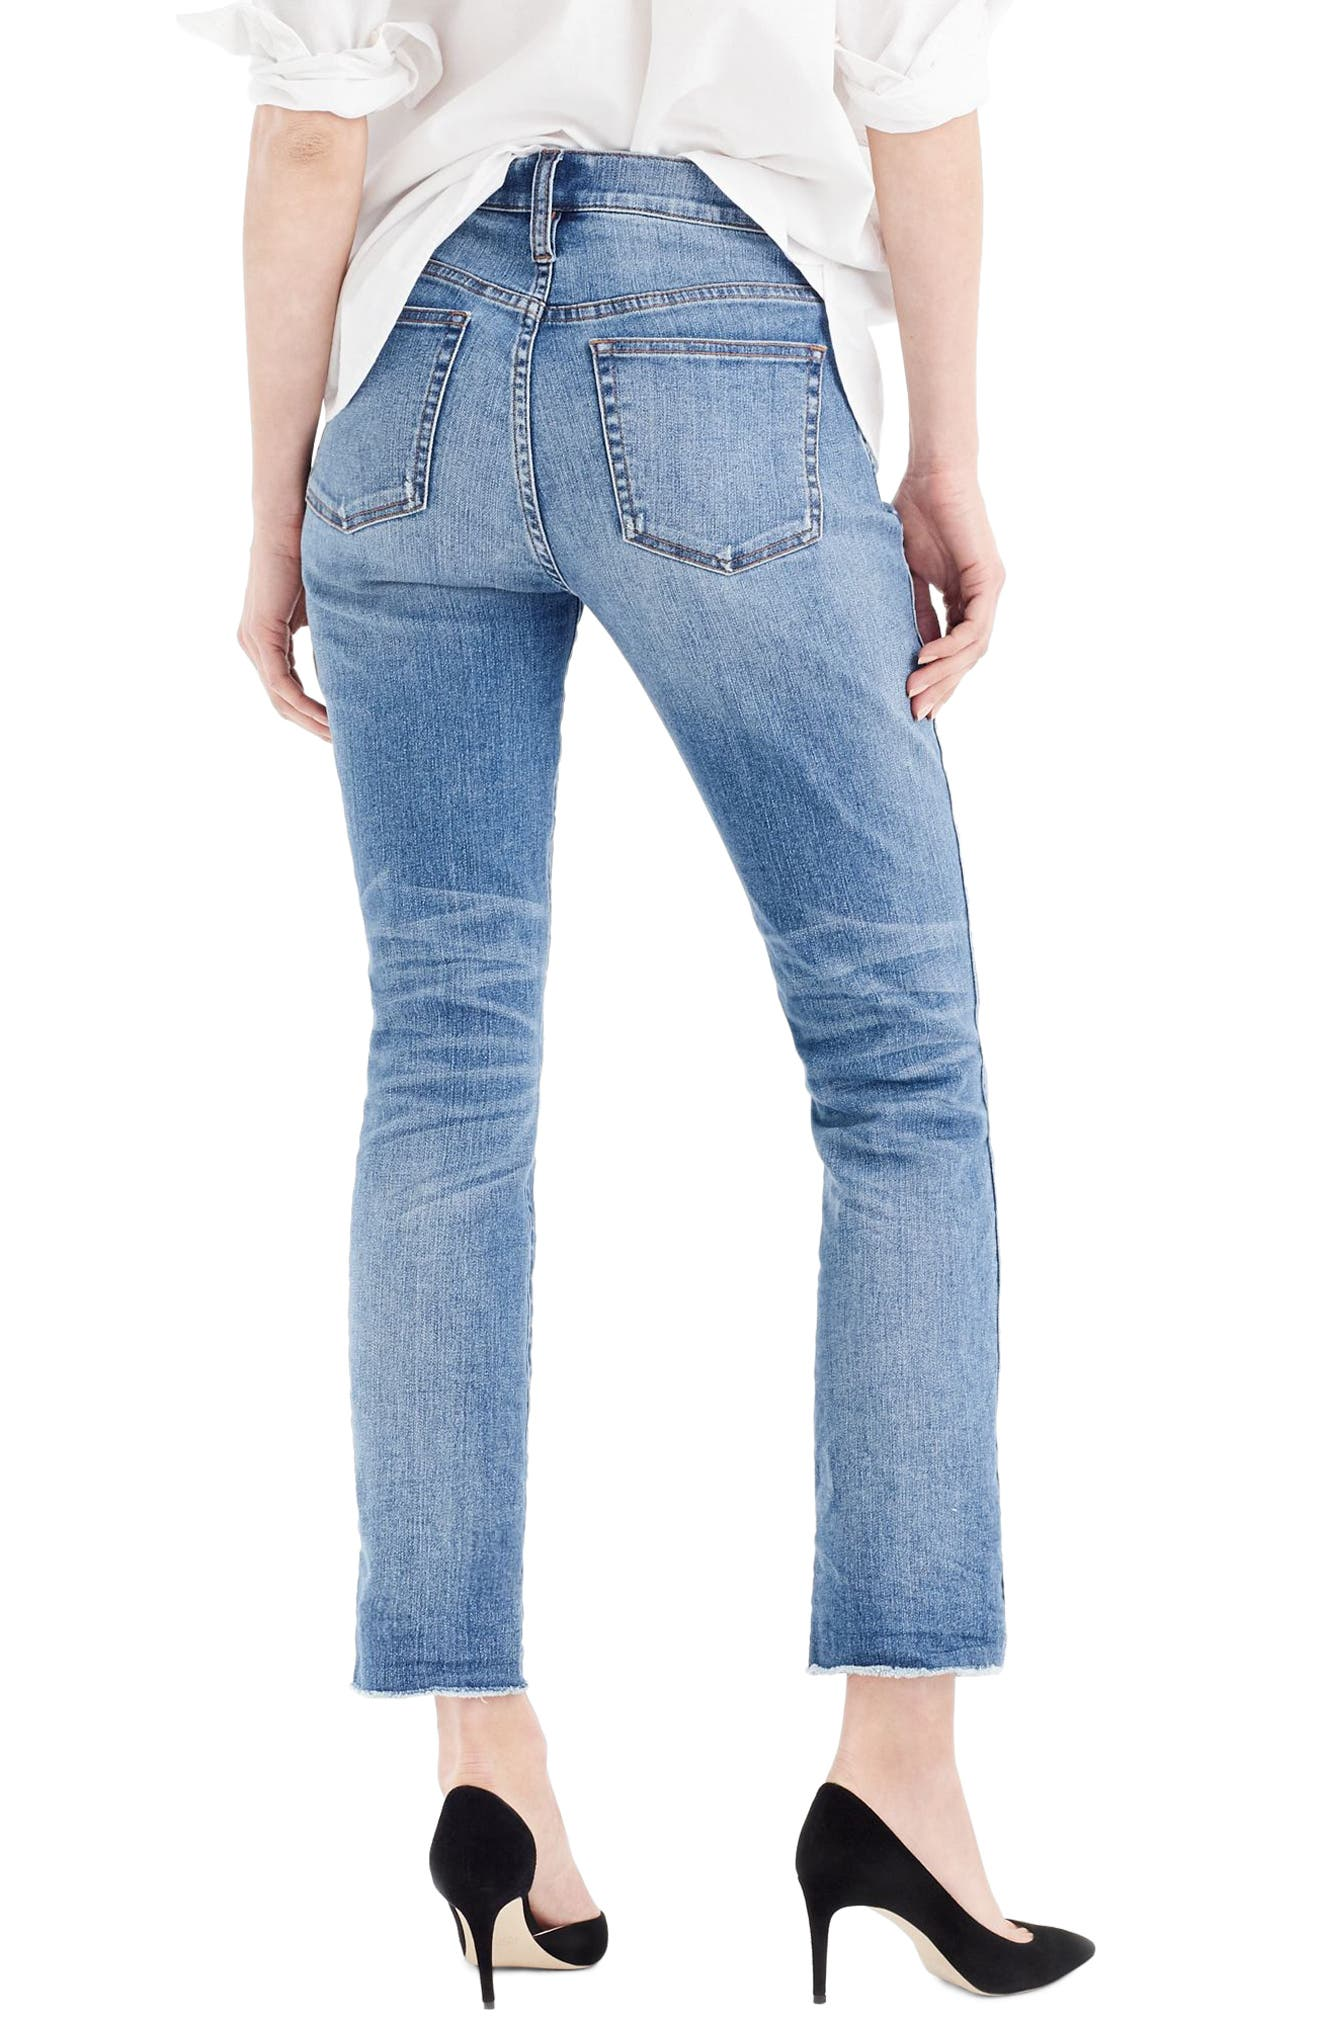 J.Crew Vintage Straight Jeans,                             Alternate thumbnail 2, color,                             Reed Wash